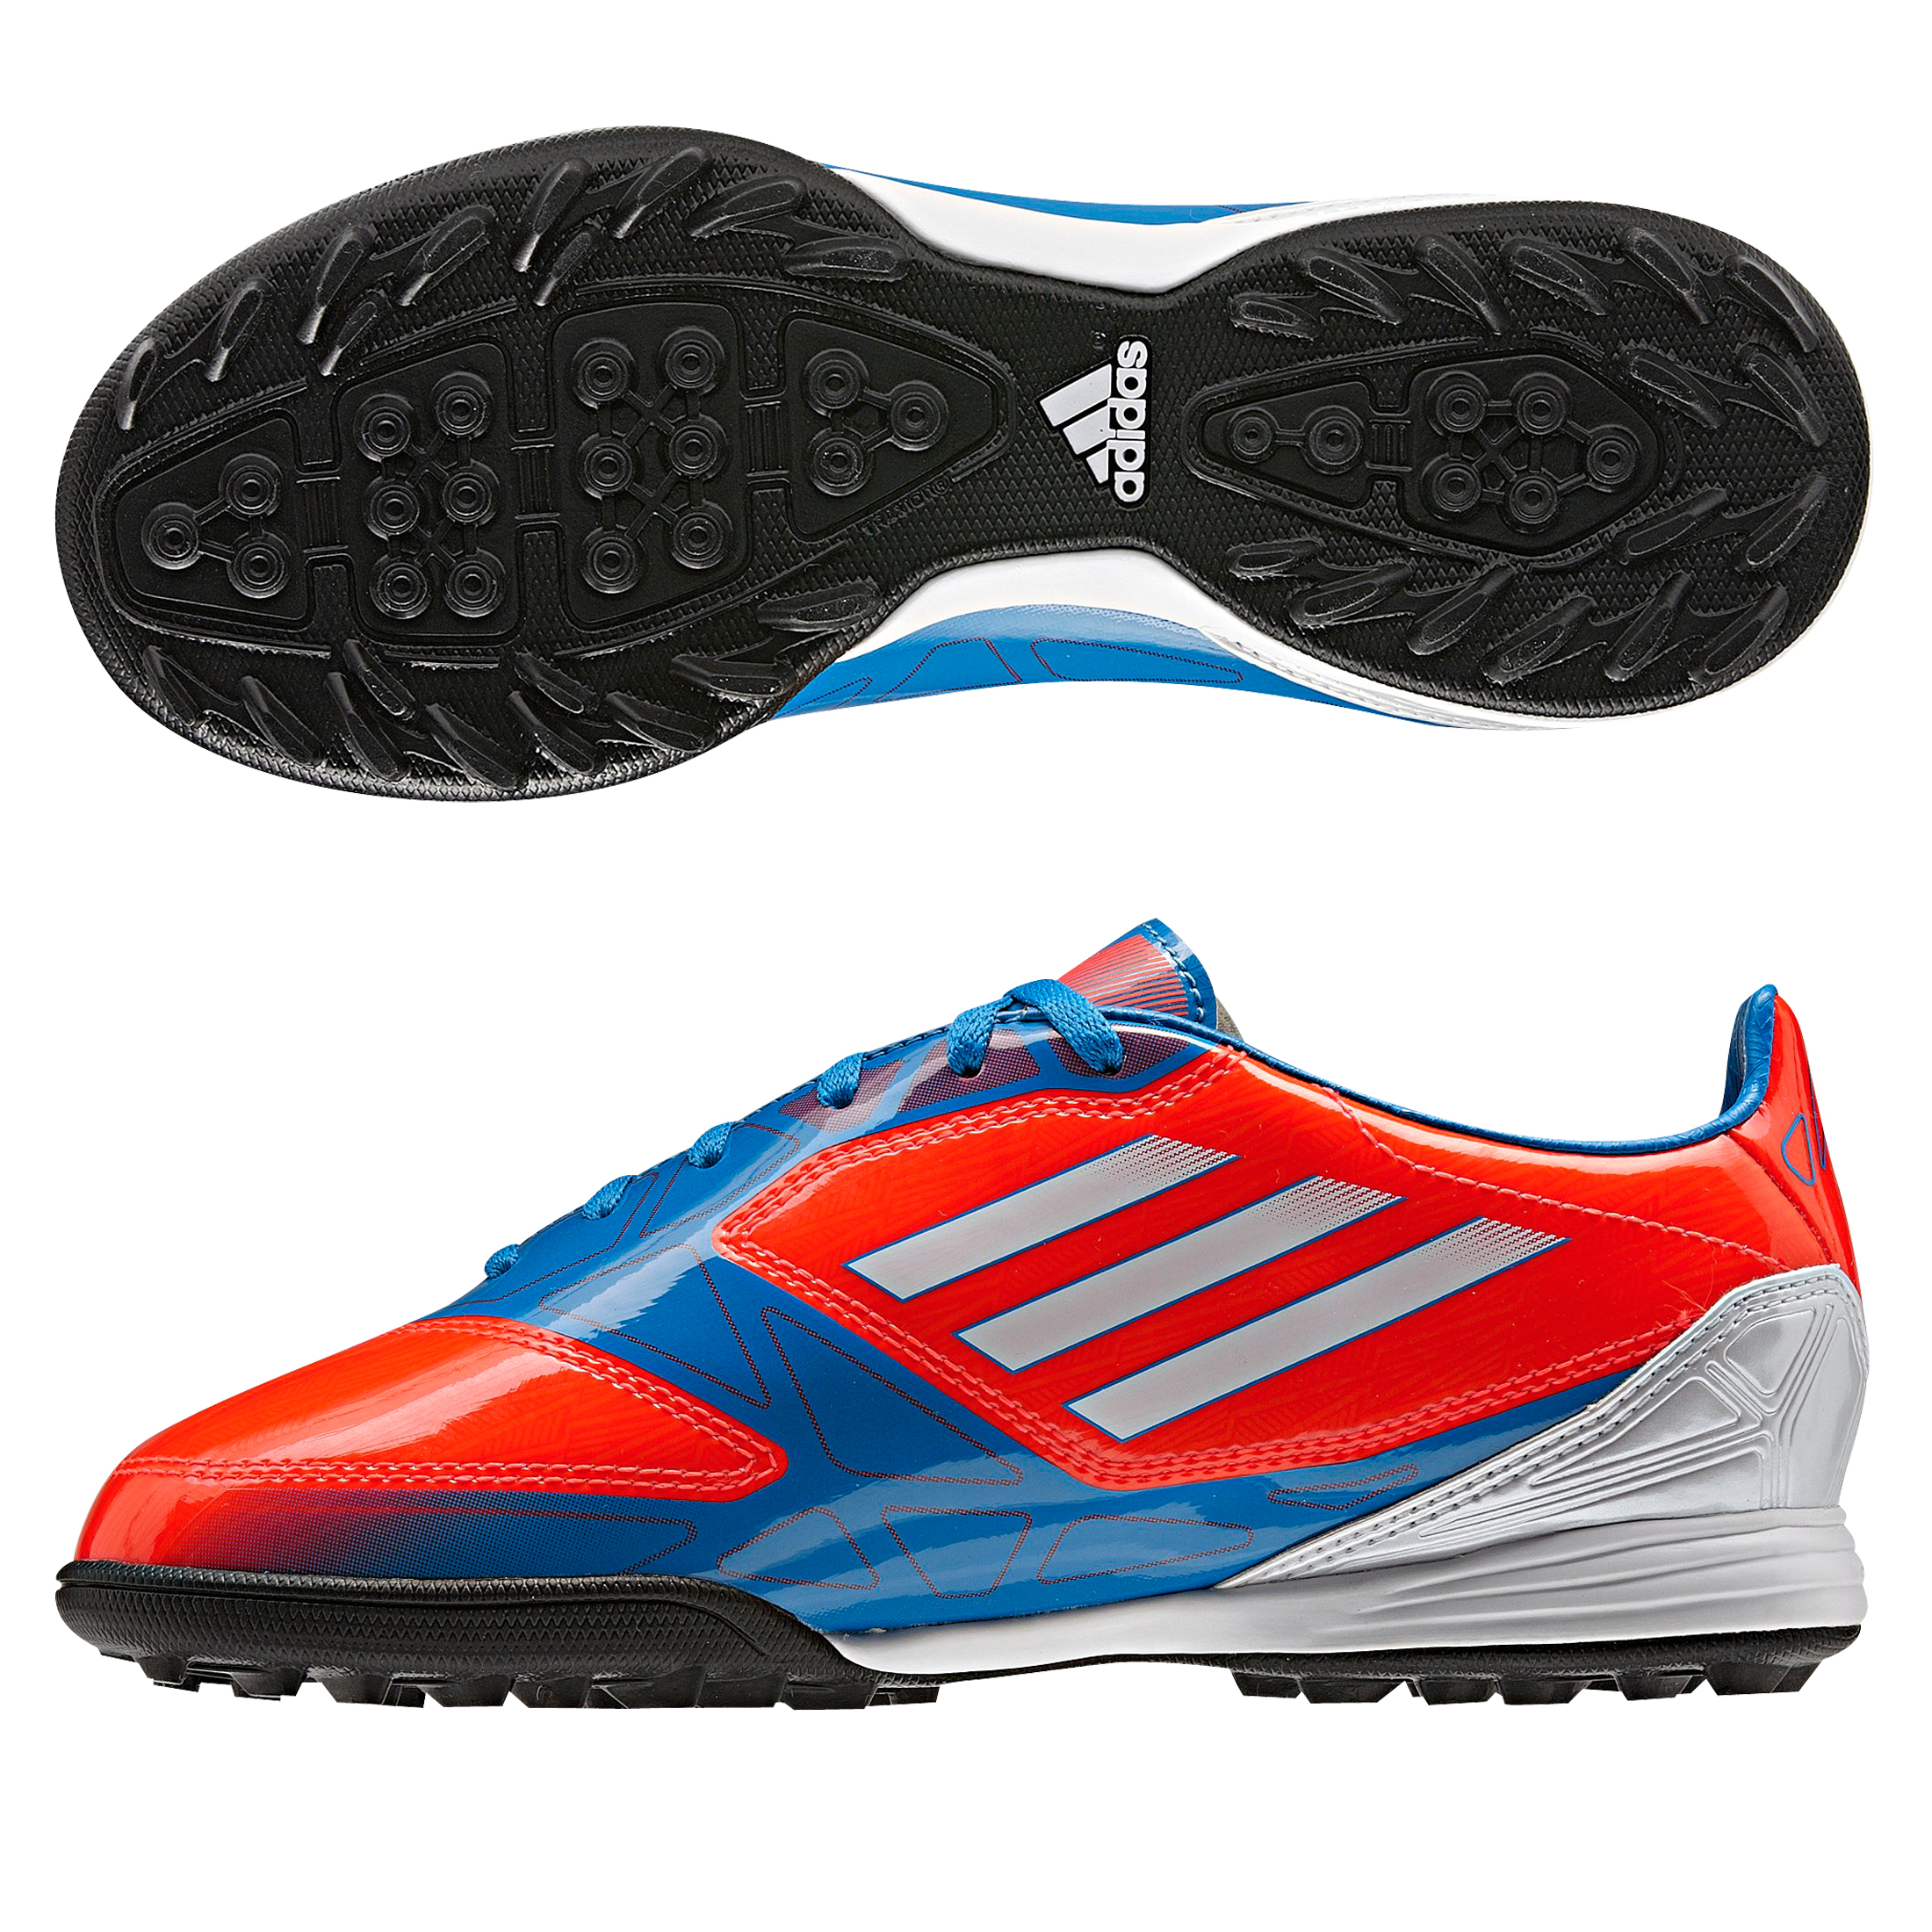 Adidas F10 TRX Astro Turf Trainers - Infrared/Running White/Bright Blue - Kids